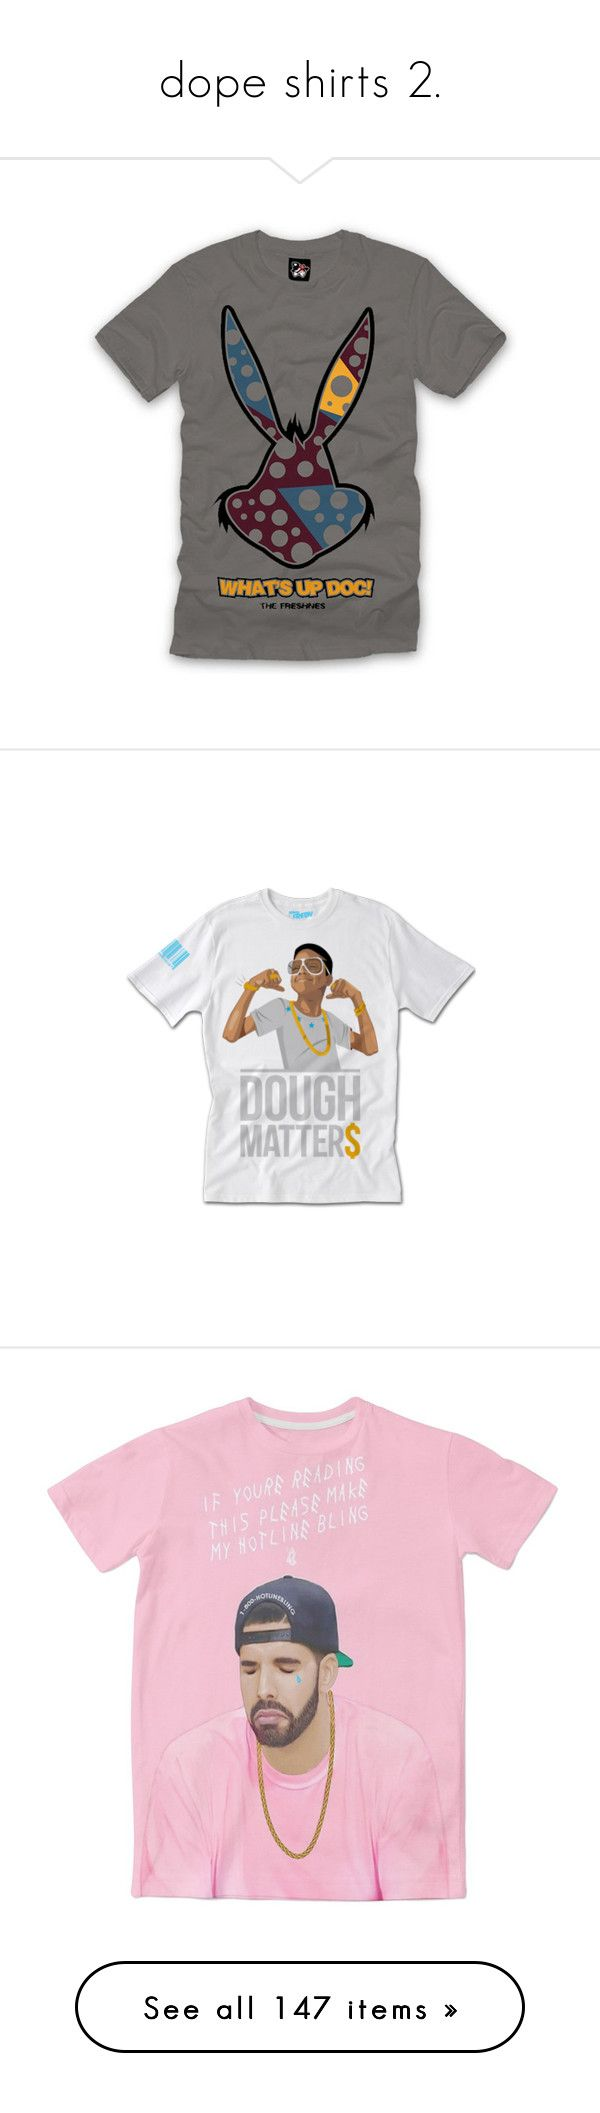 """""""dope shirts 2."""" by yeauxbriana ❤ liked on Polyvore featuring tops, t-shirts, shirts, tee-shirt, bordeaux shirt, bordeaux top, bordeaux t shirts, shirt tops, white shirts and t shirt"""